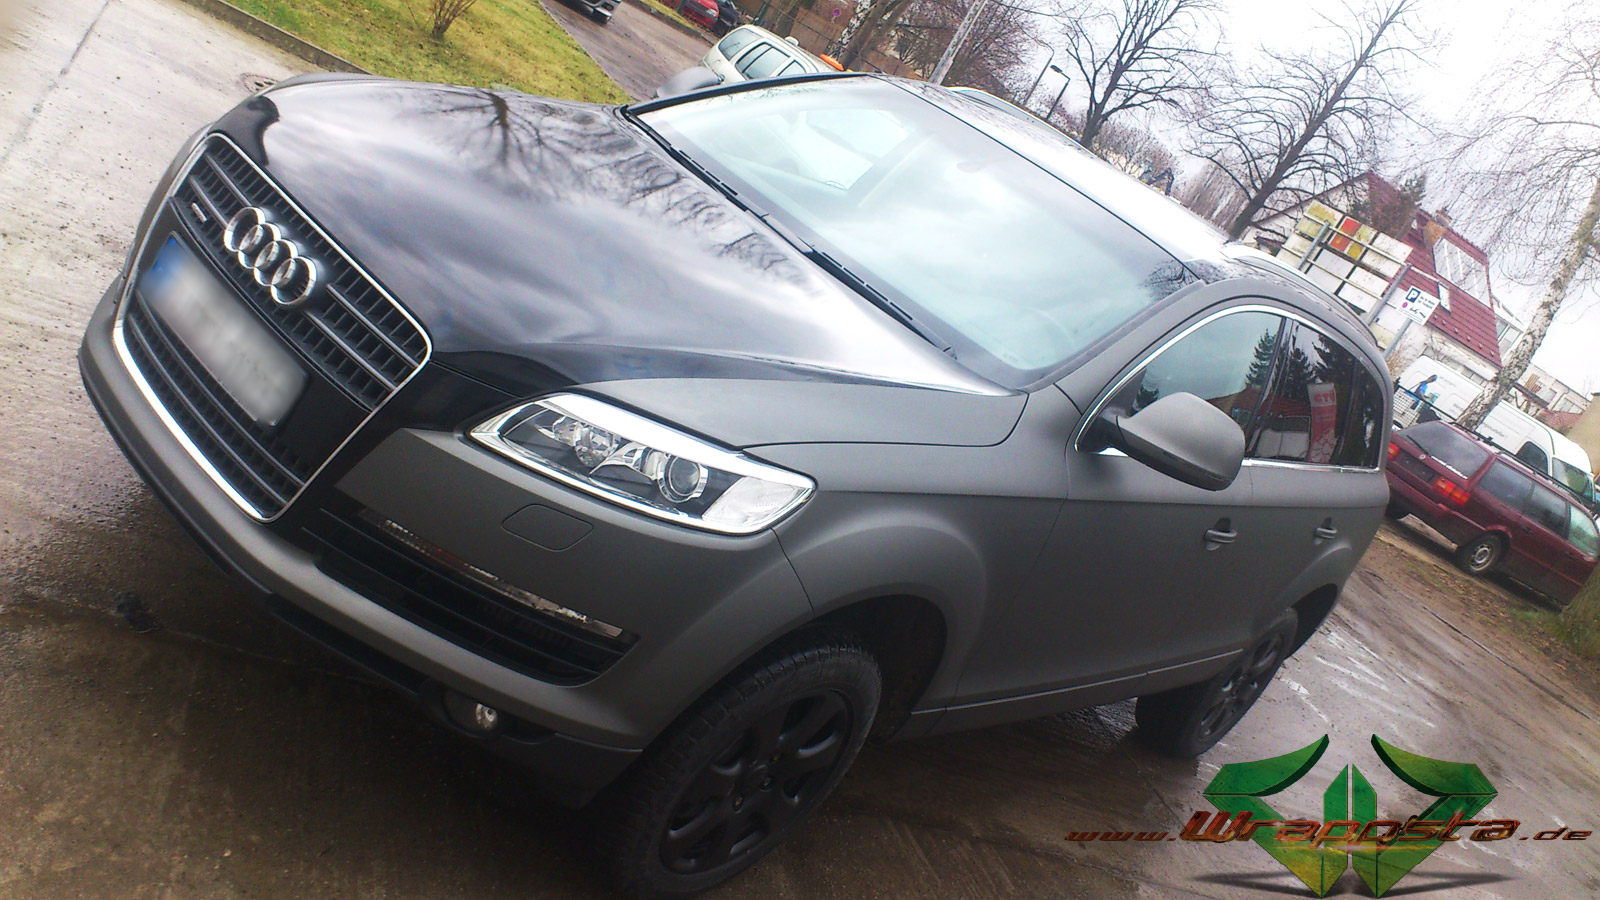 Audi Q7 >> Audi Q7 - Ultra Matt Anthrazit metallic & glanz Schwarz - Wrappsta Berlin